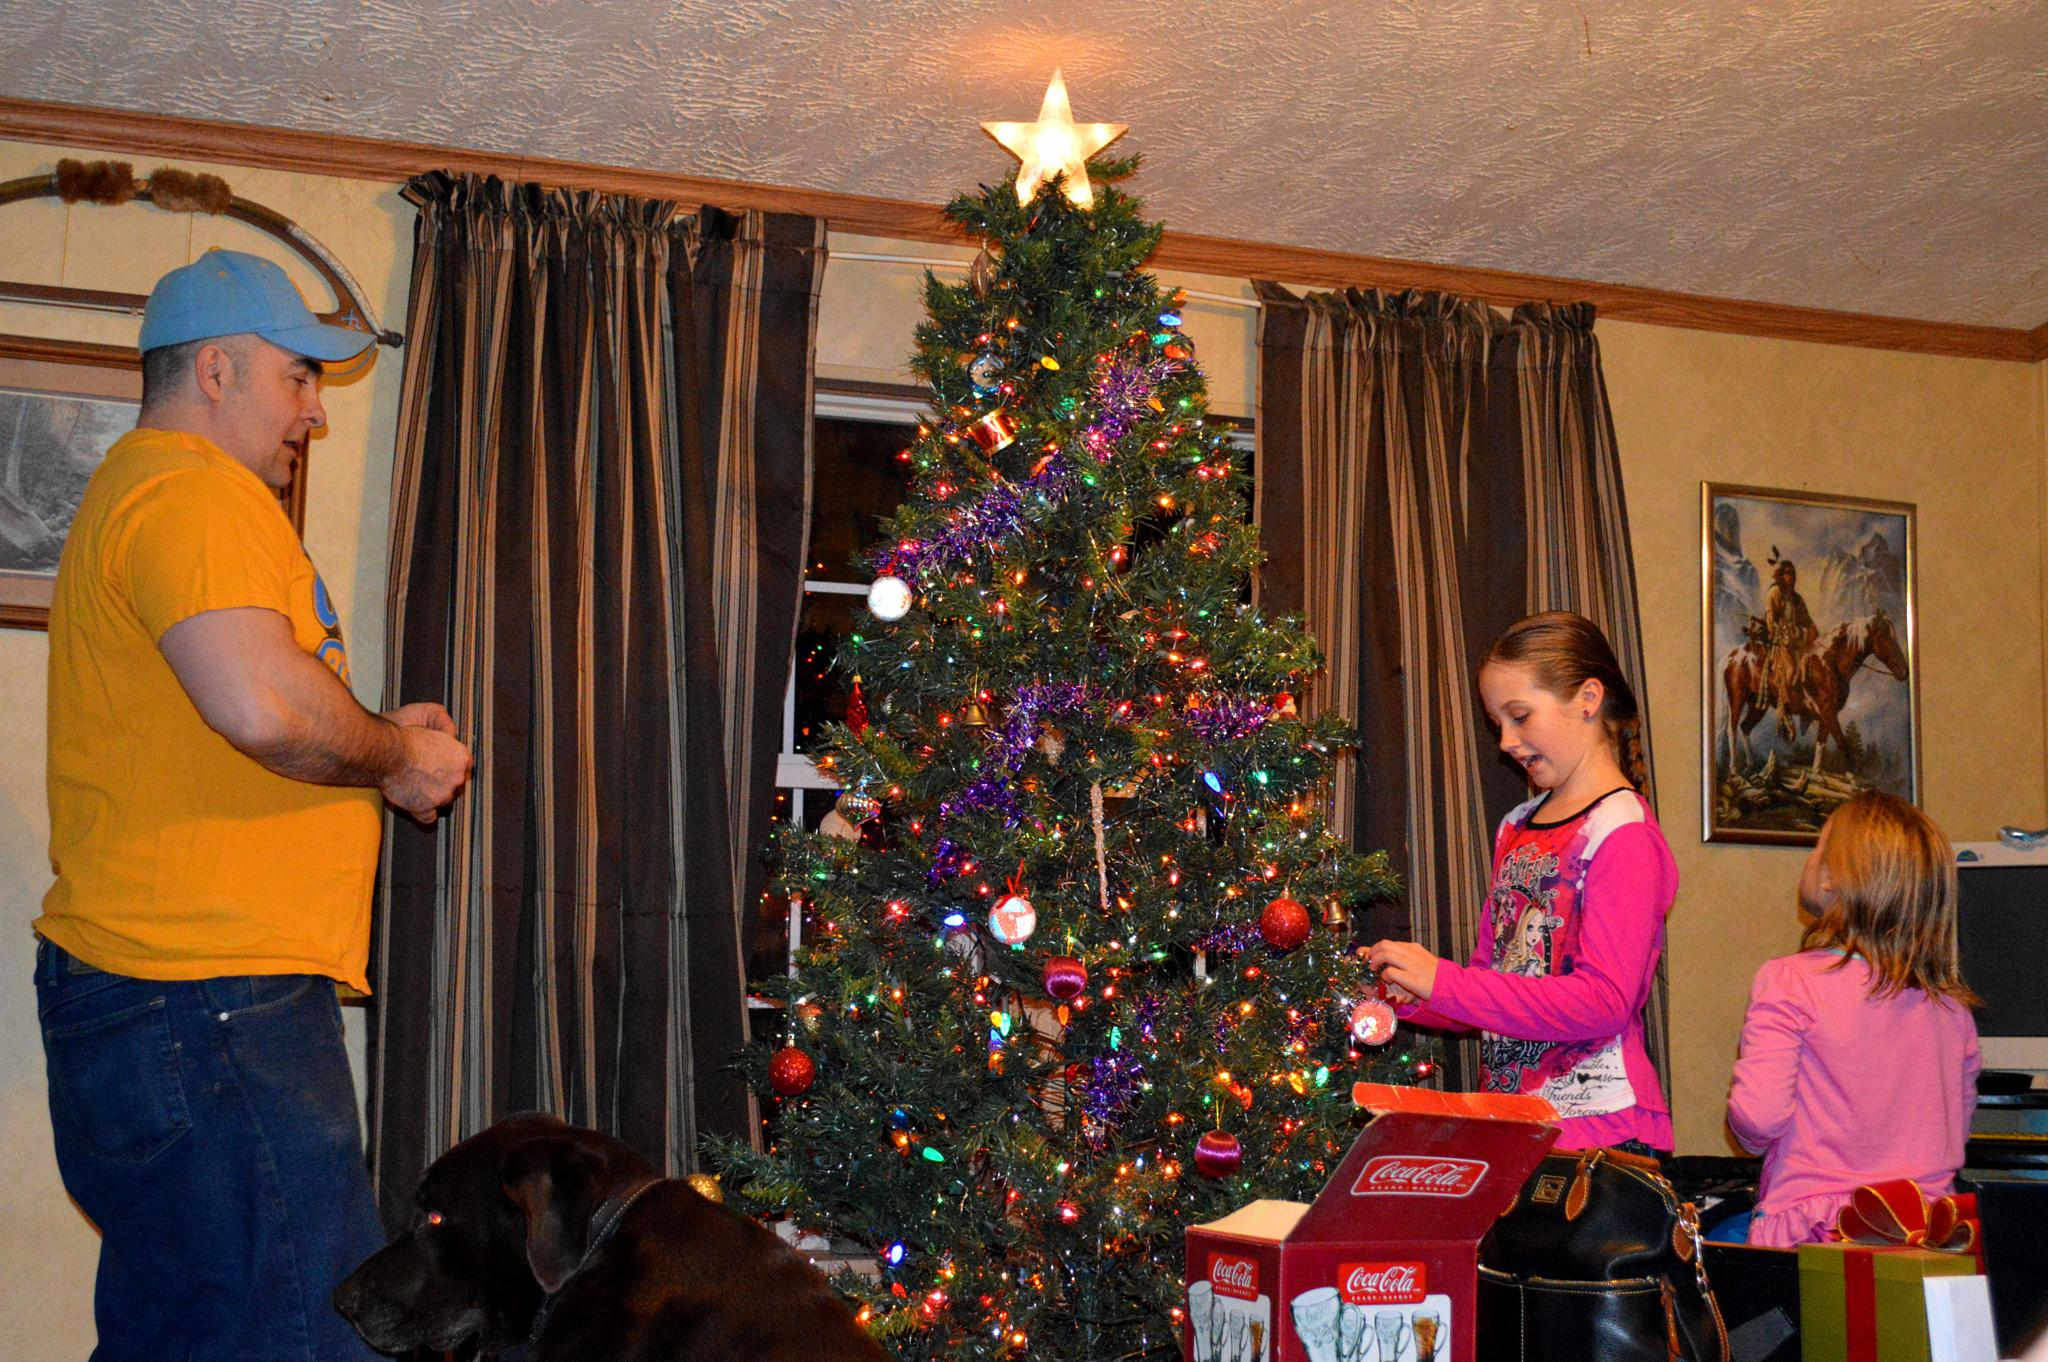 Decorating the tree by Lori21929